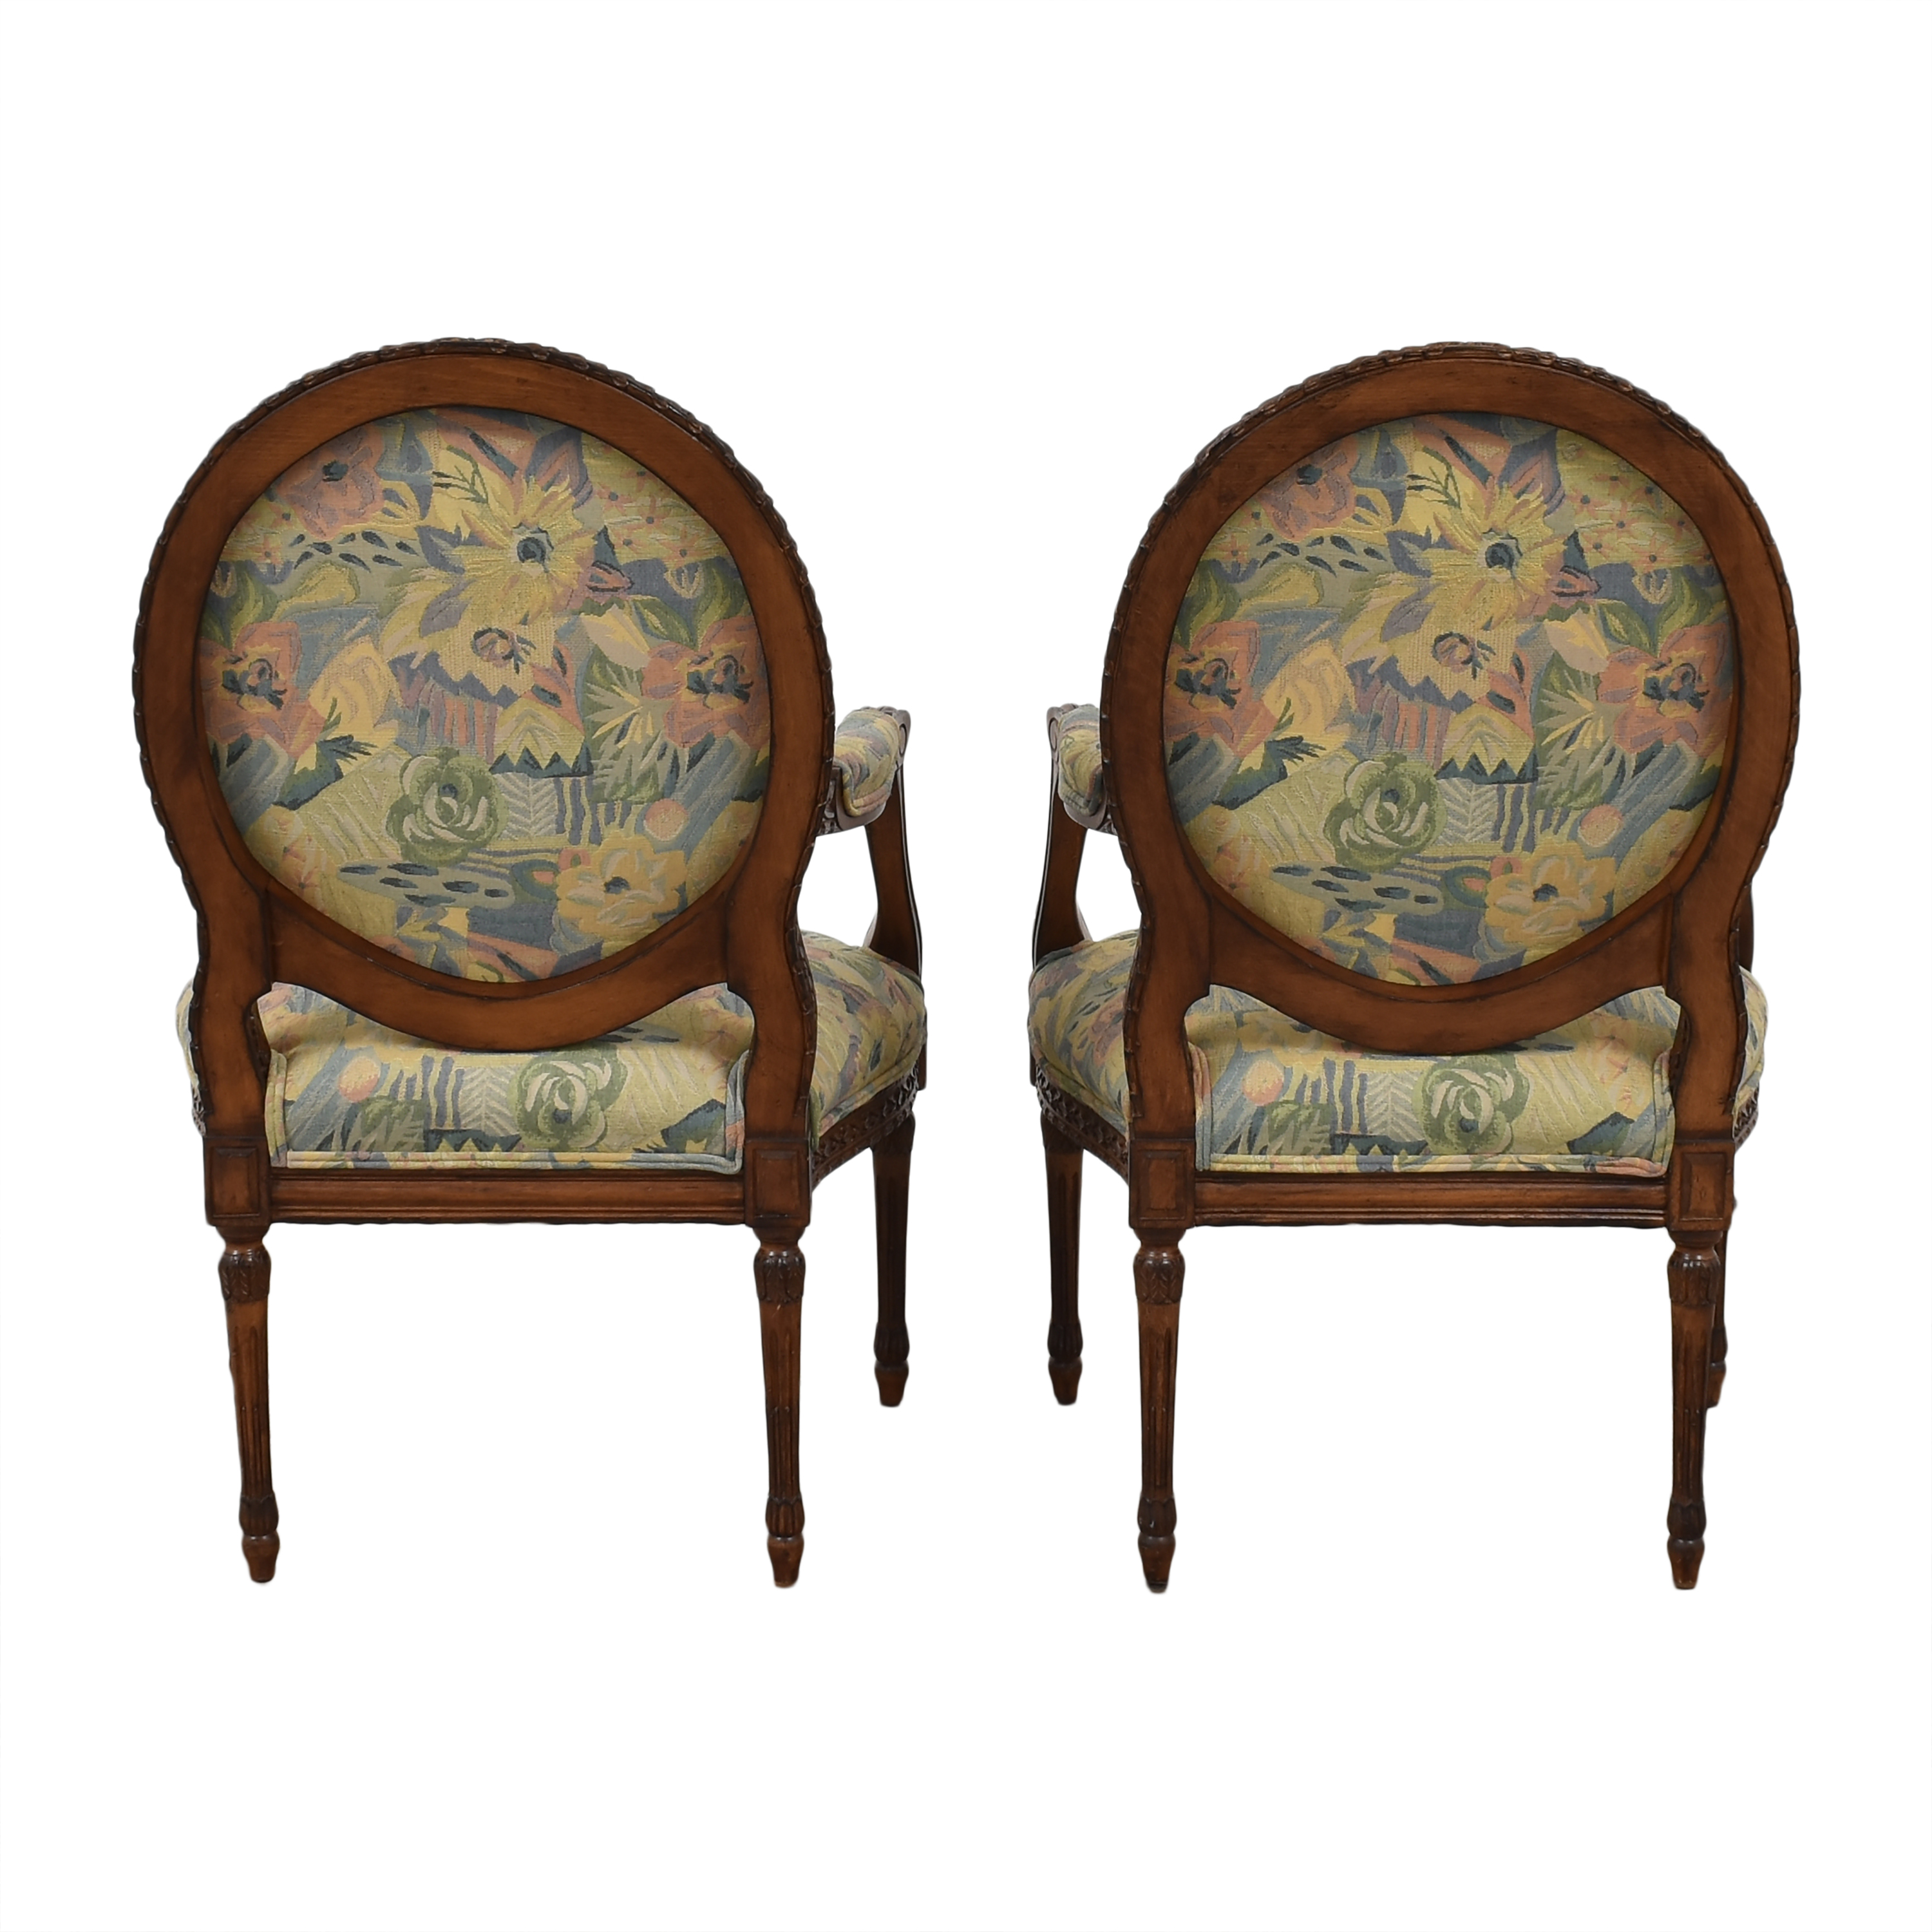 Meyer Gunther Martini Meyer Gunther Martini Carved Arm Chairs second hand